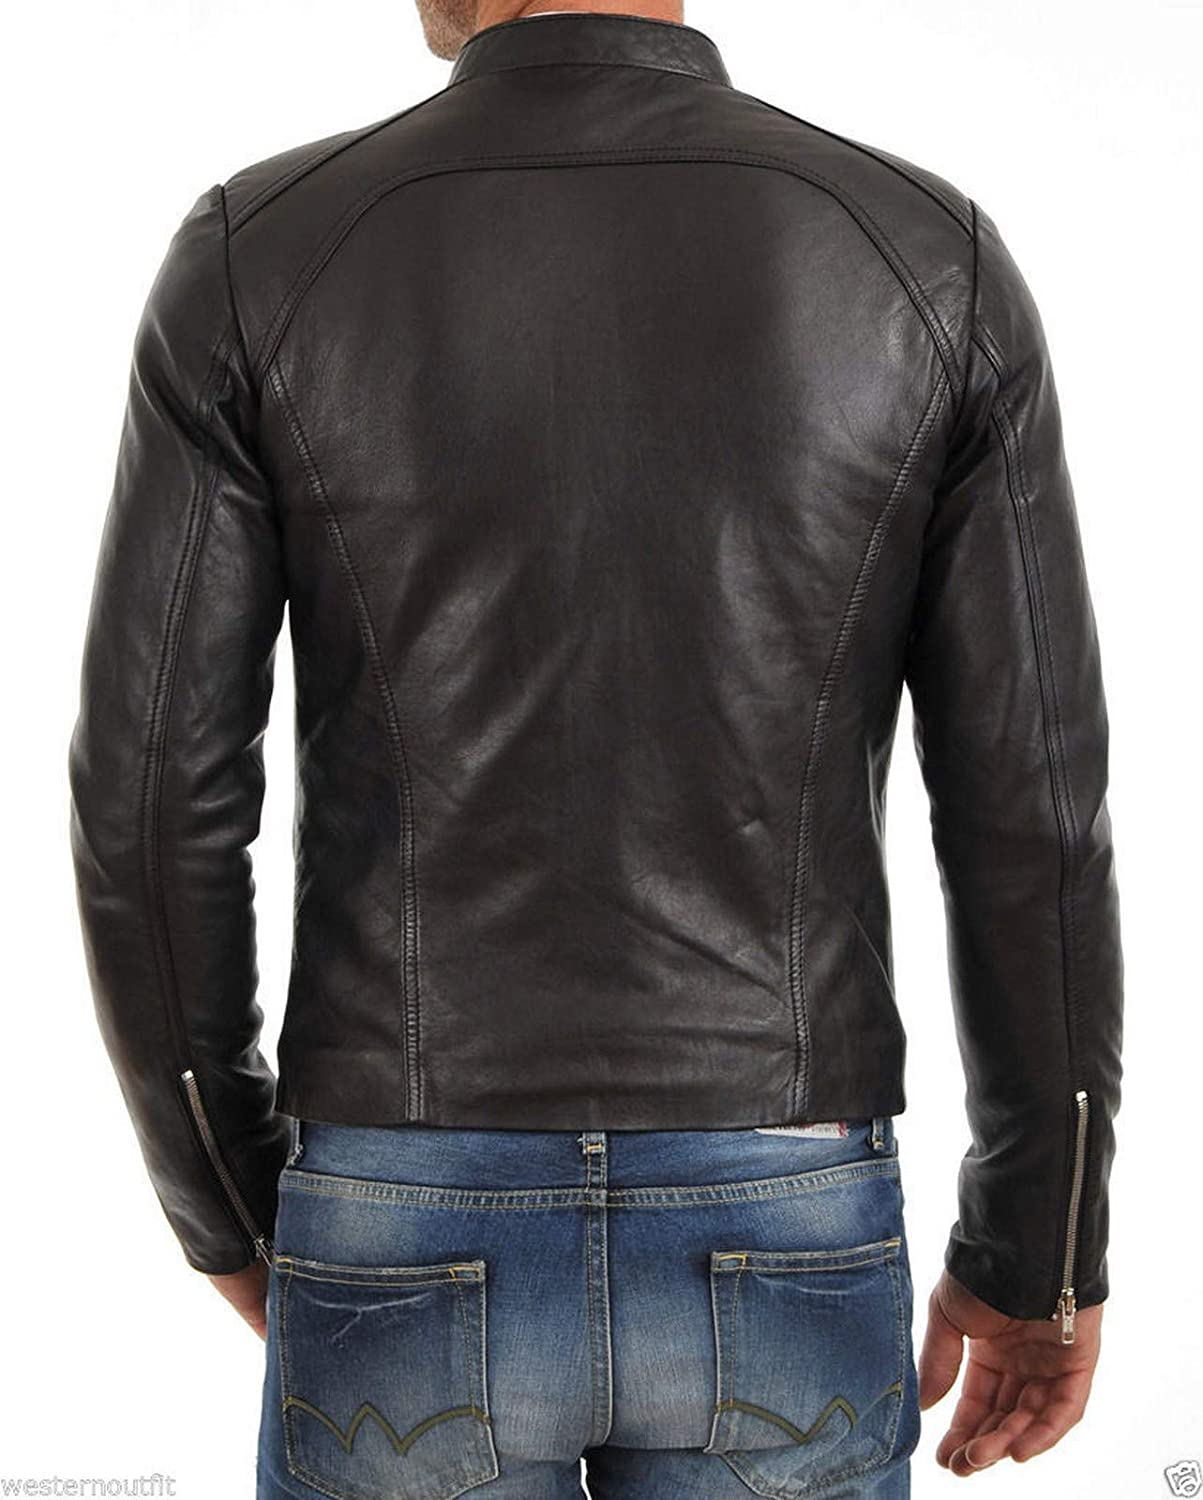 Woojo Mens Leather Biker Jacket WJ058